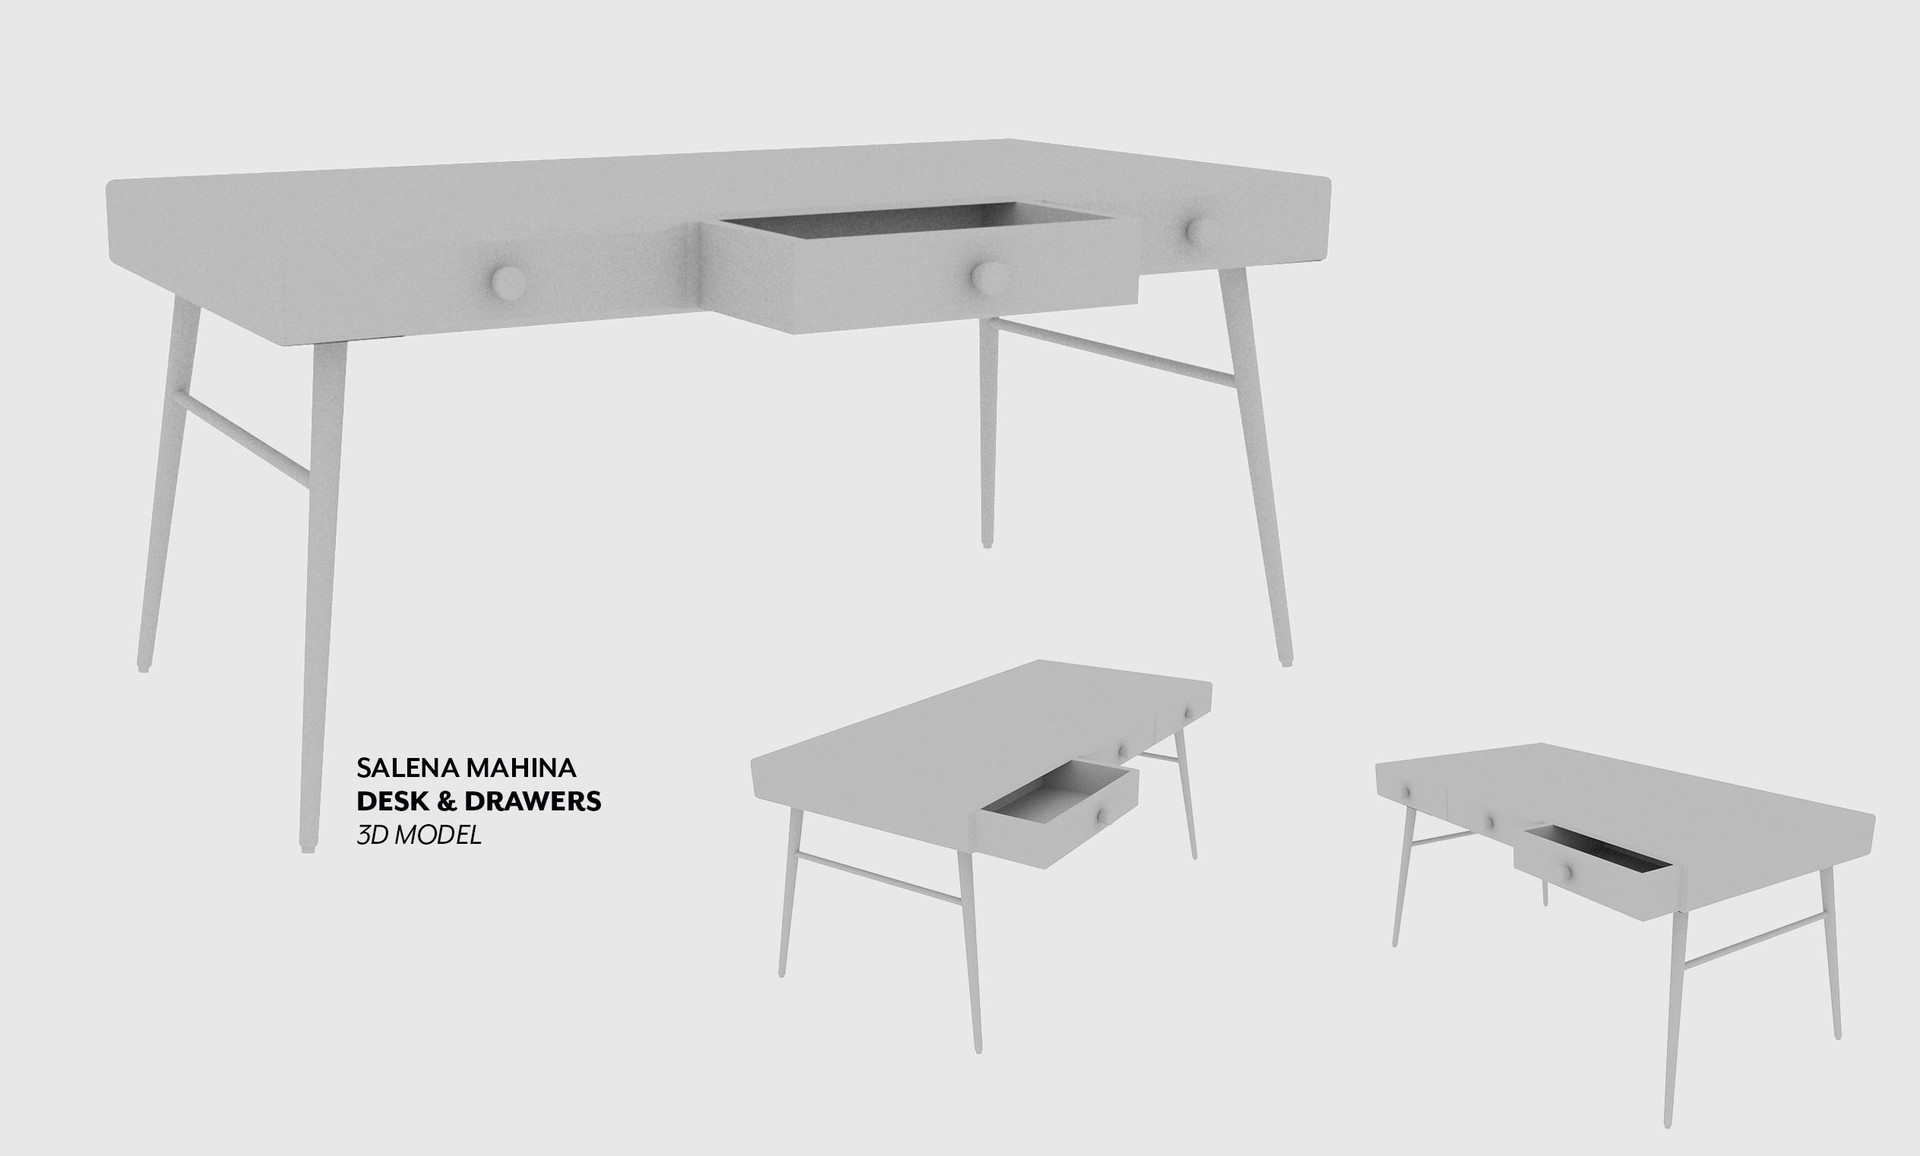 Salena mahina desk layout 1